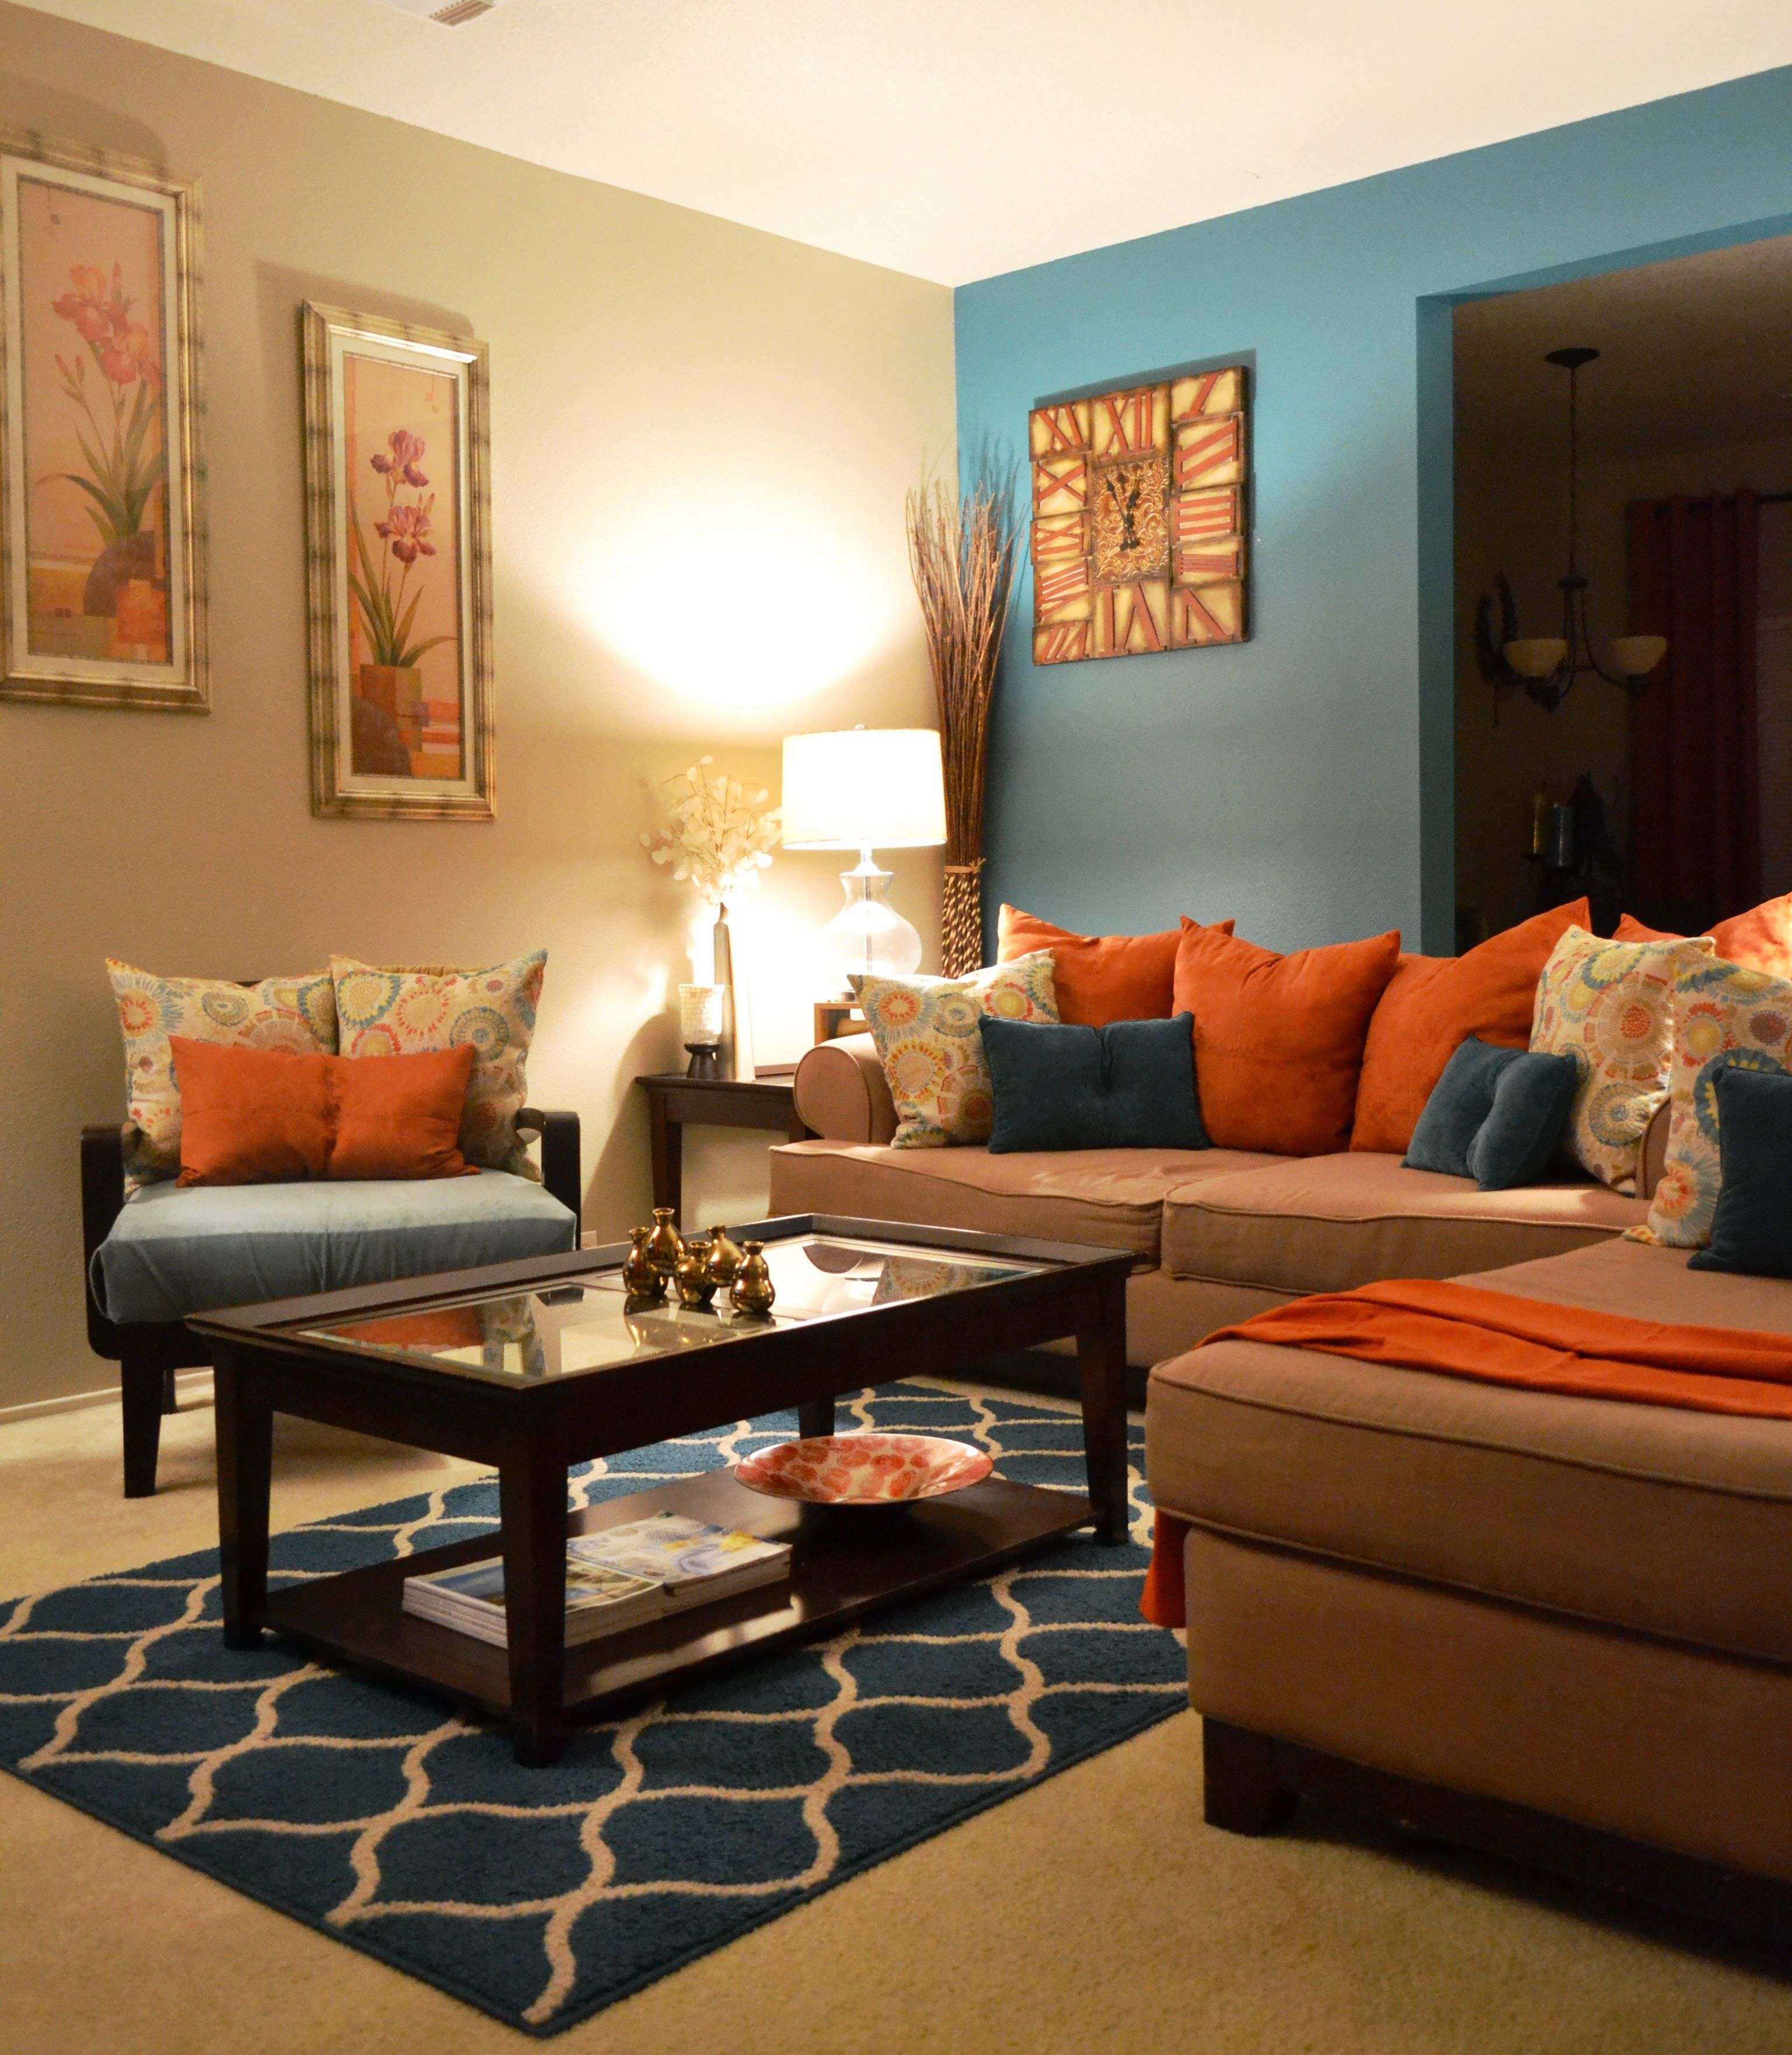 living room ideas orange and brown rugs coffee table pillows teal orange living room 24814